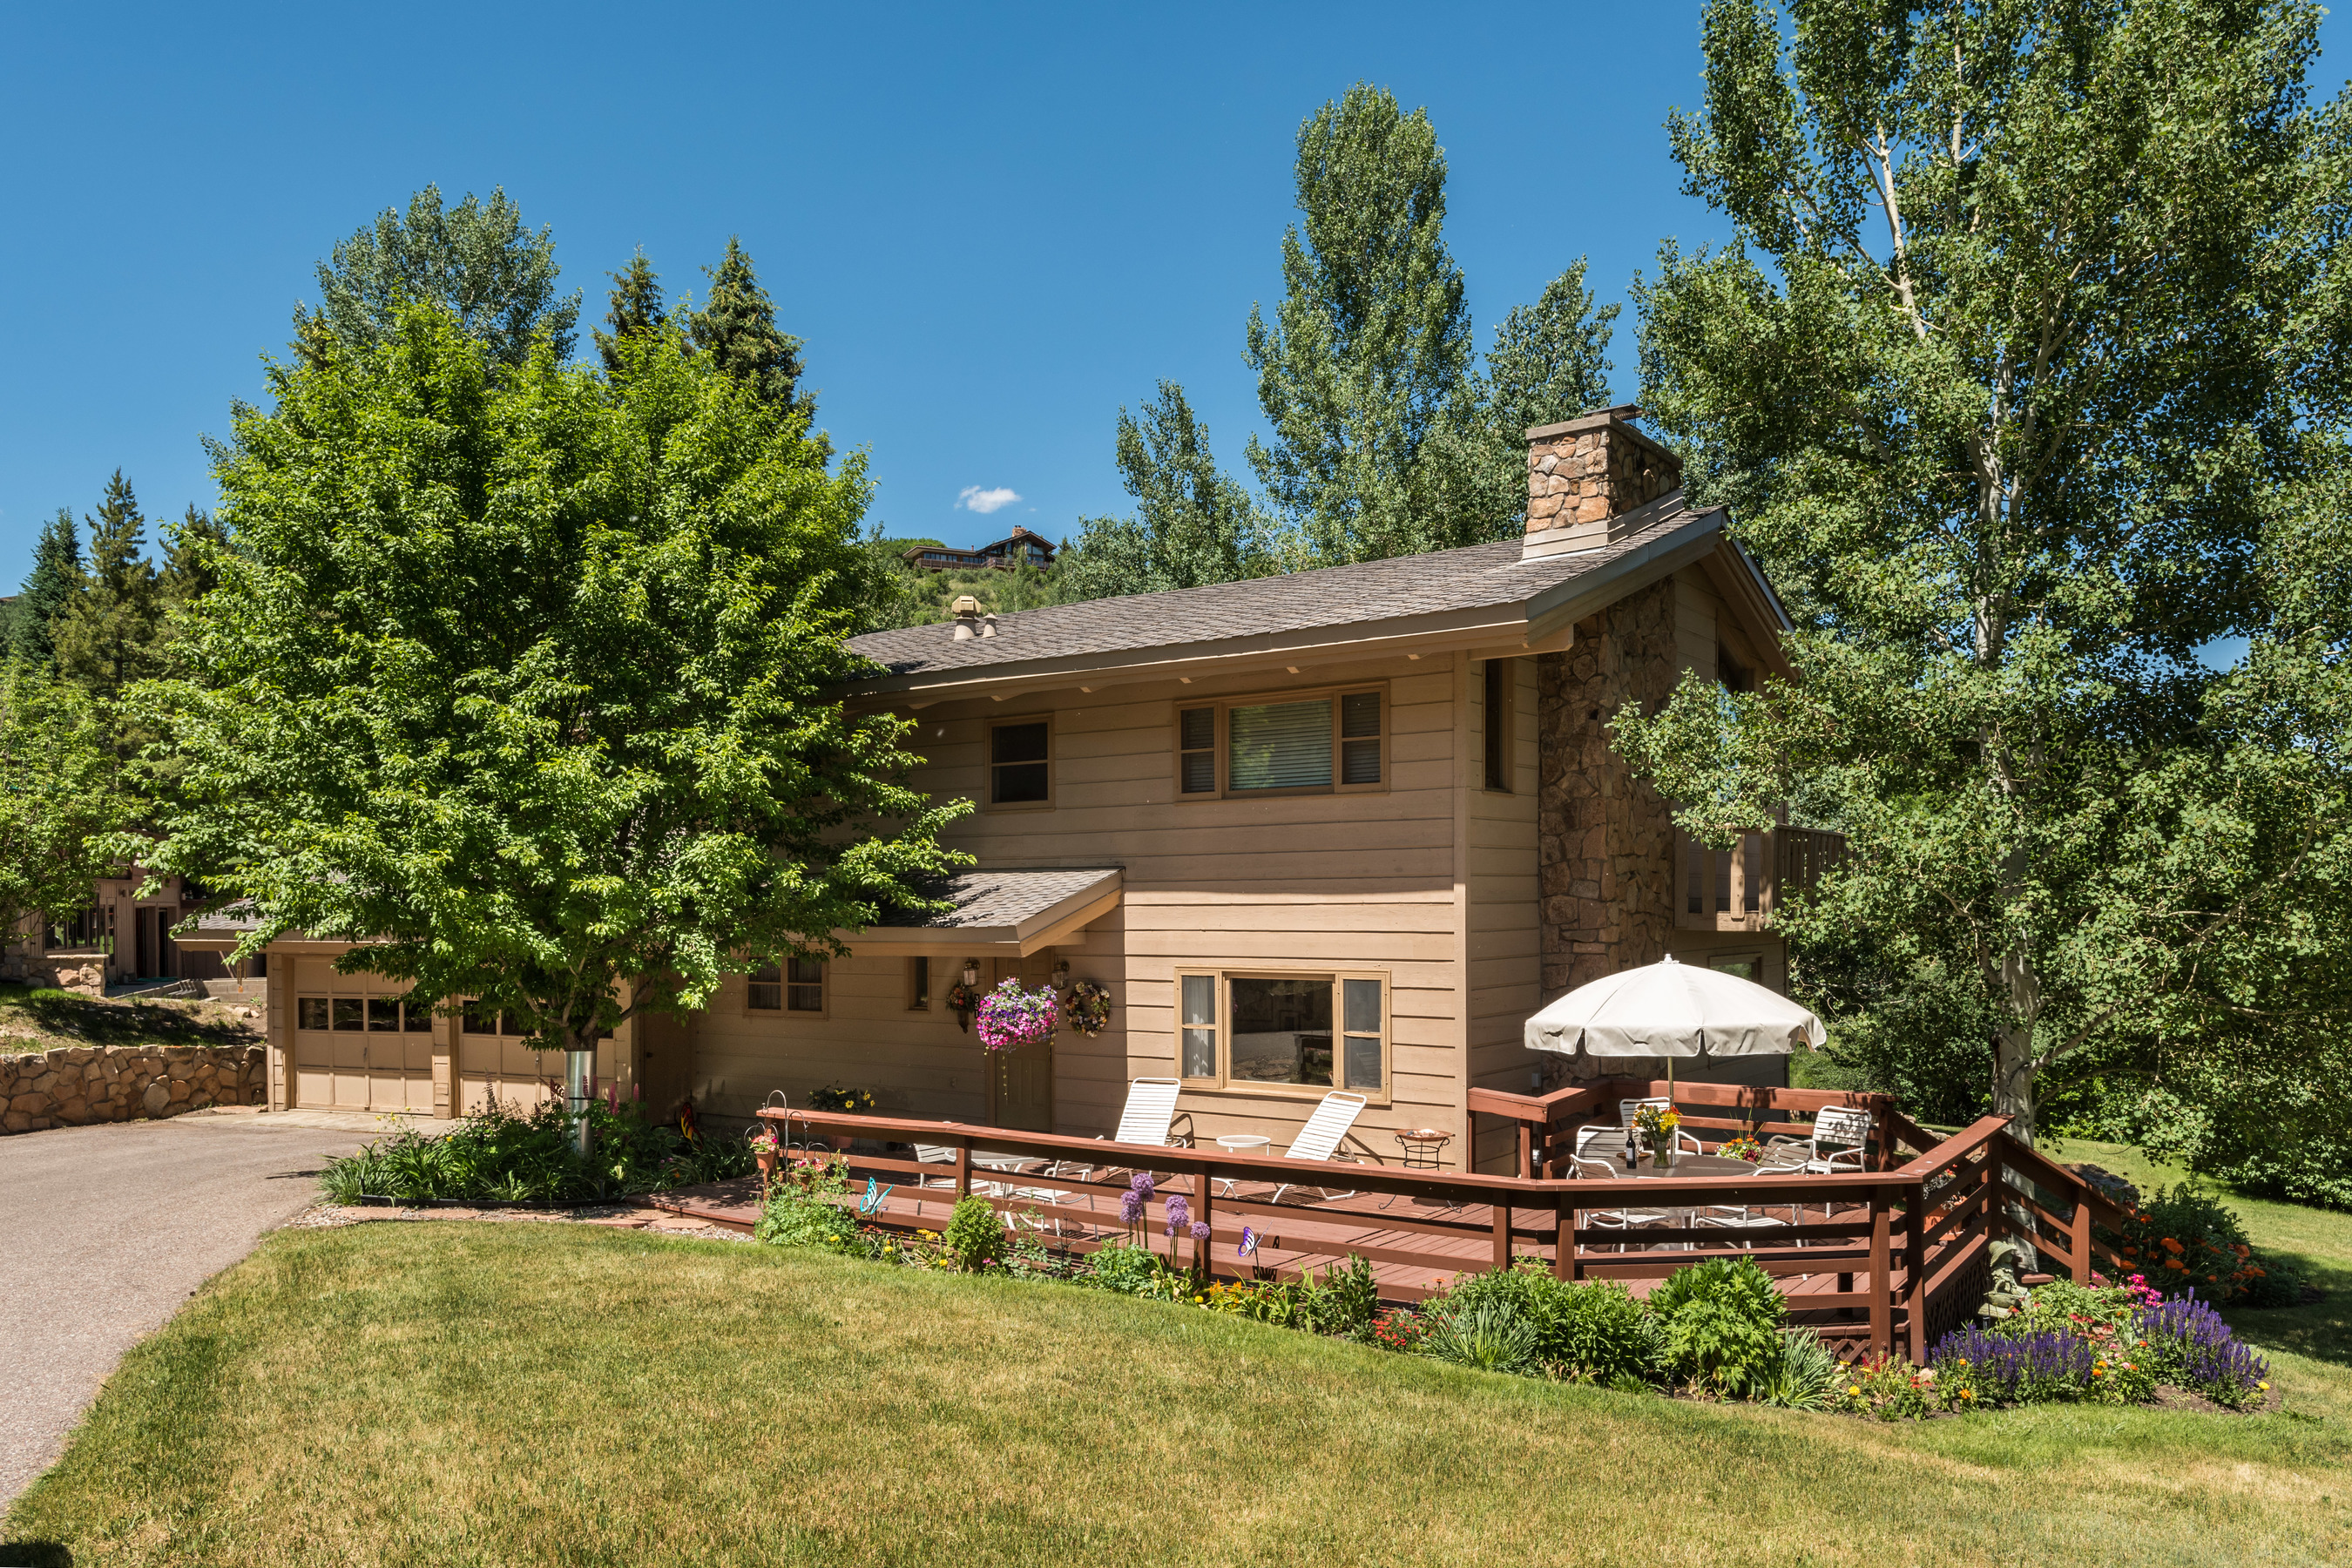 獨棟家庭住宅 為 出售 在 Charming Home in Great Family Neighborhood 351 Meadow Road Snowmass Village, 科羅拉多州, 81615 美國